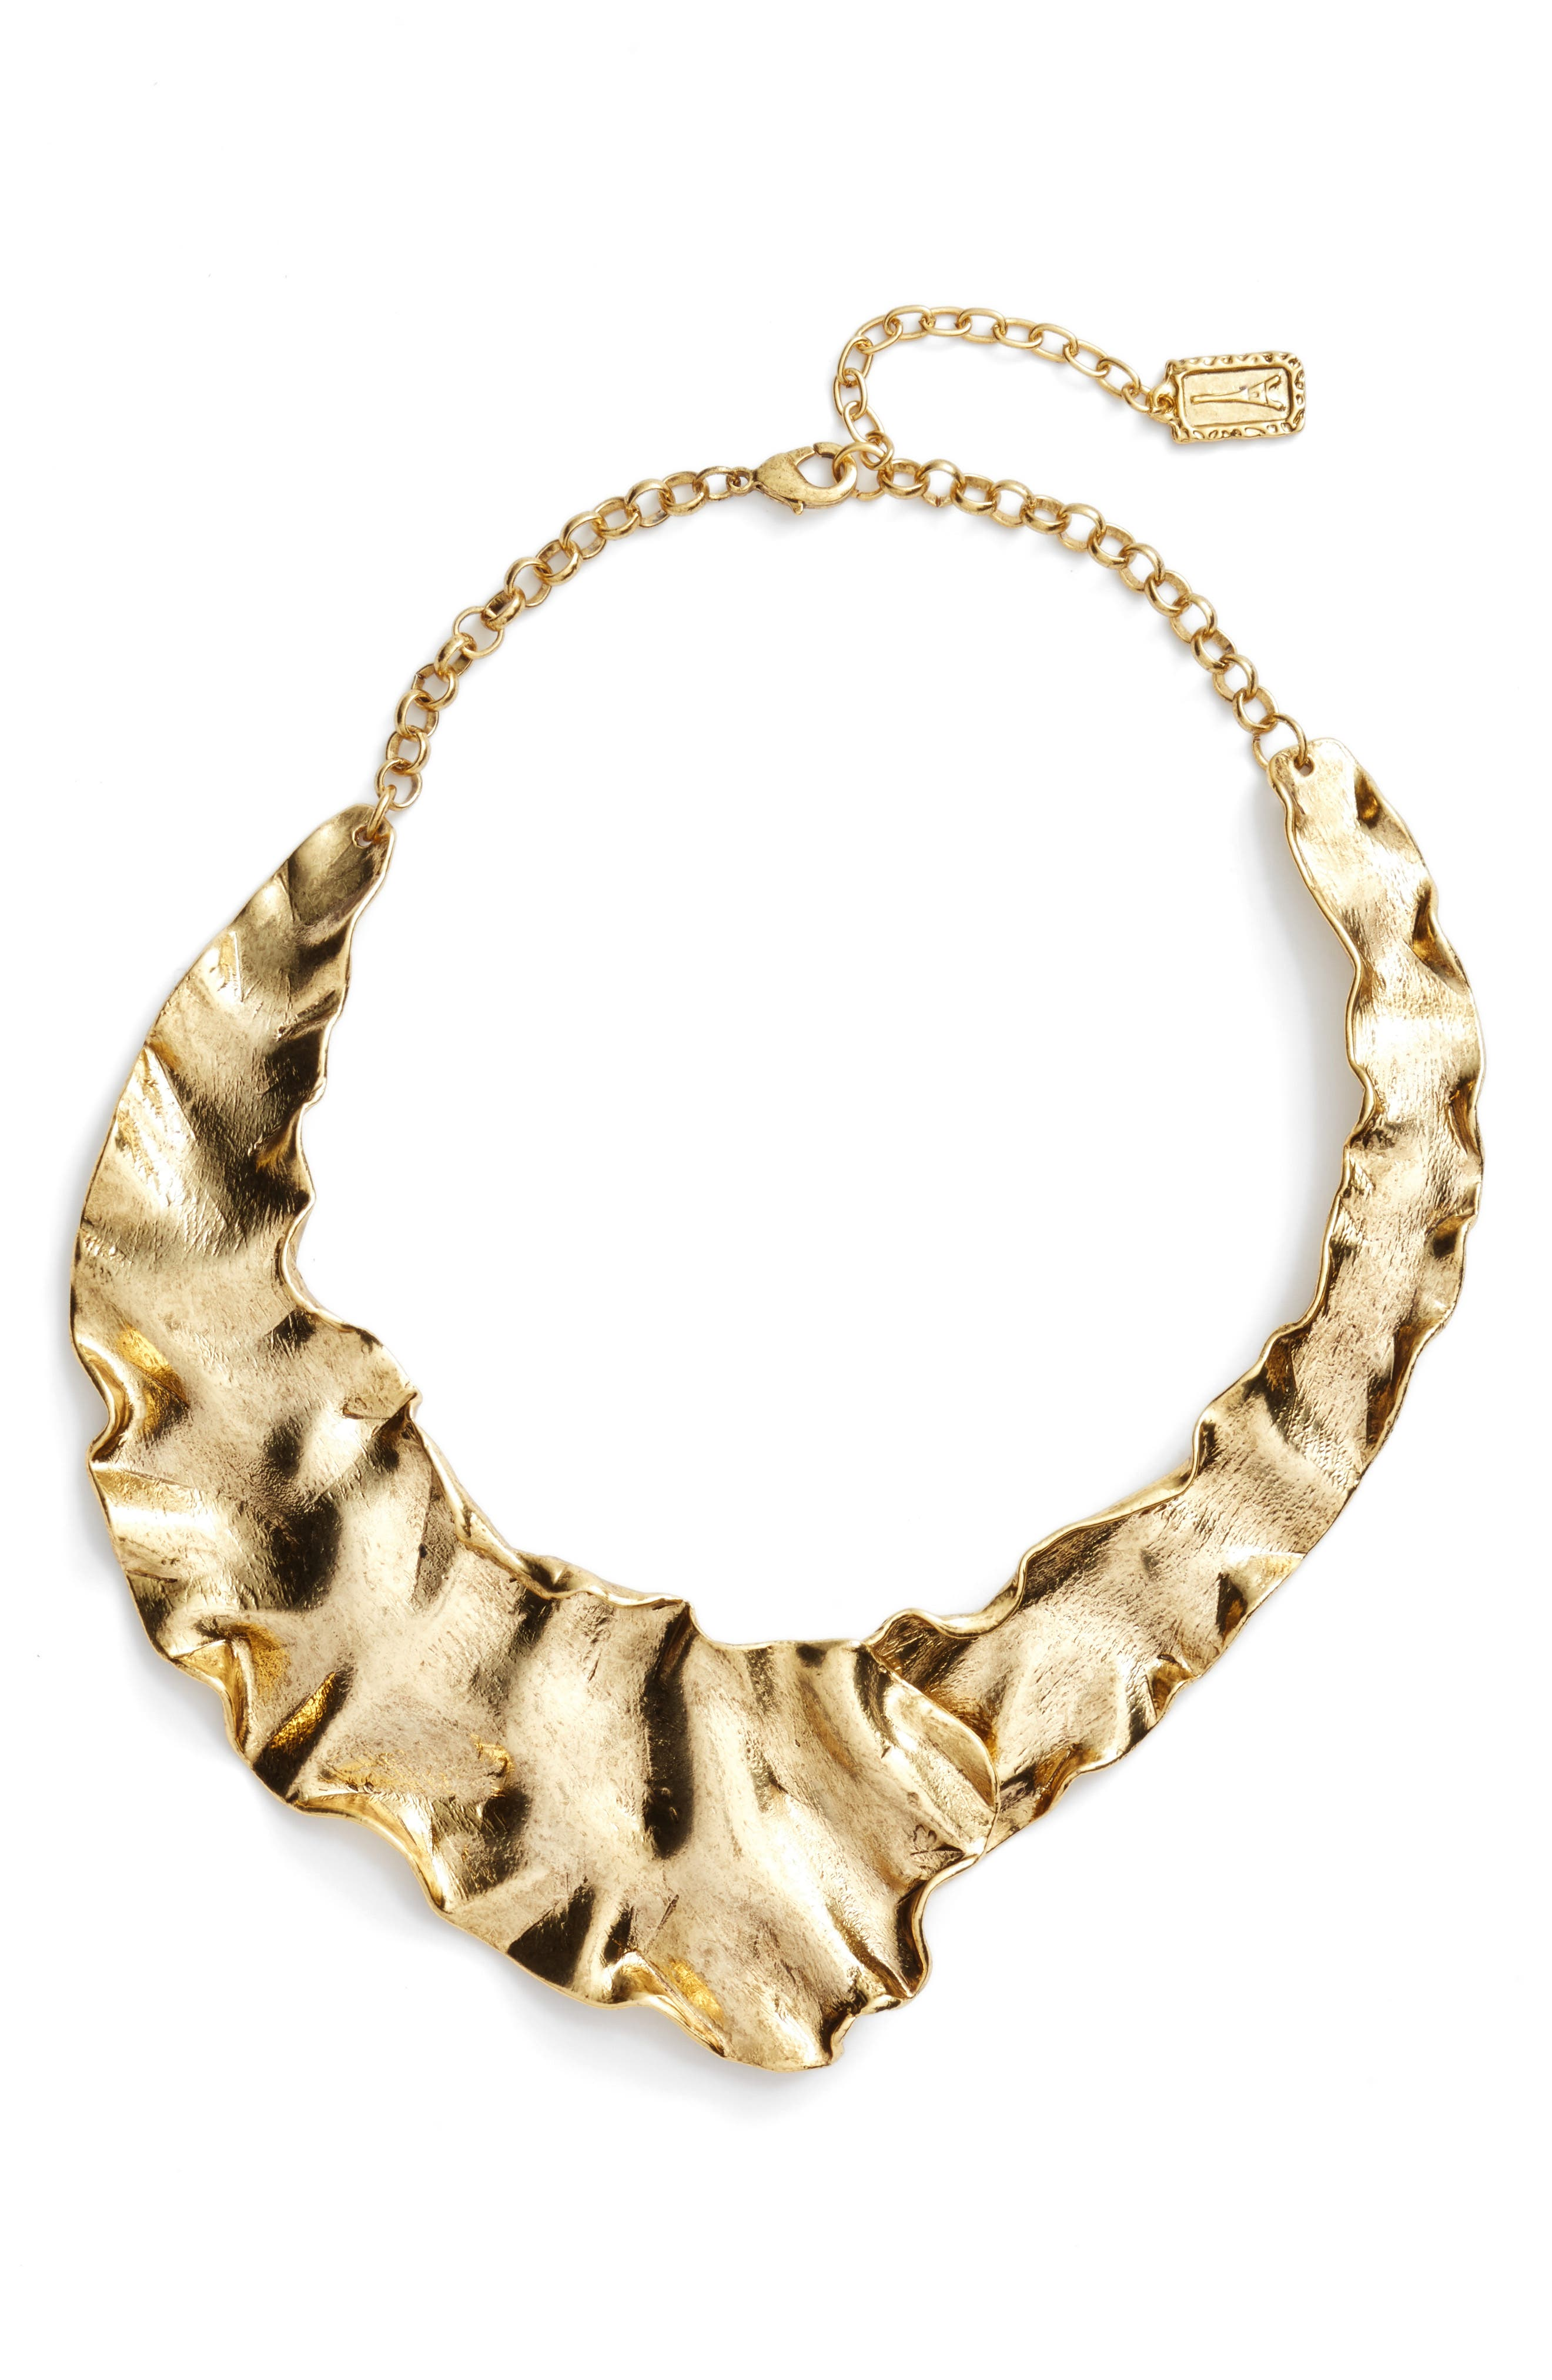 Karine Sultan Gold Plate Collar Necklace